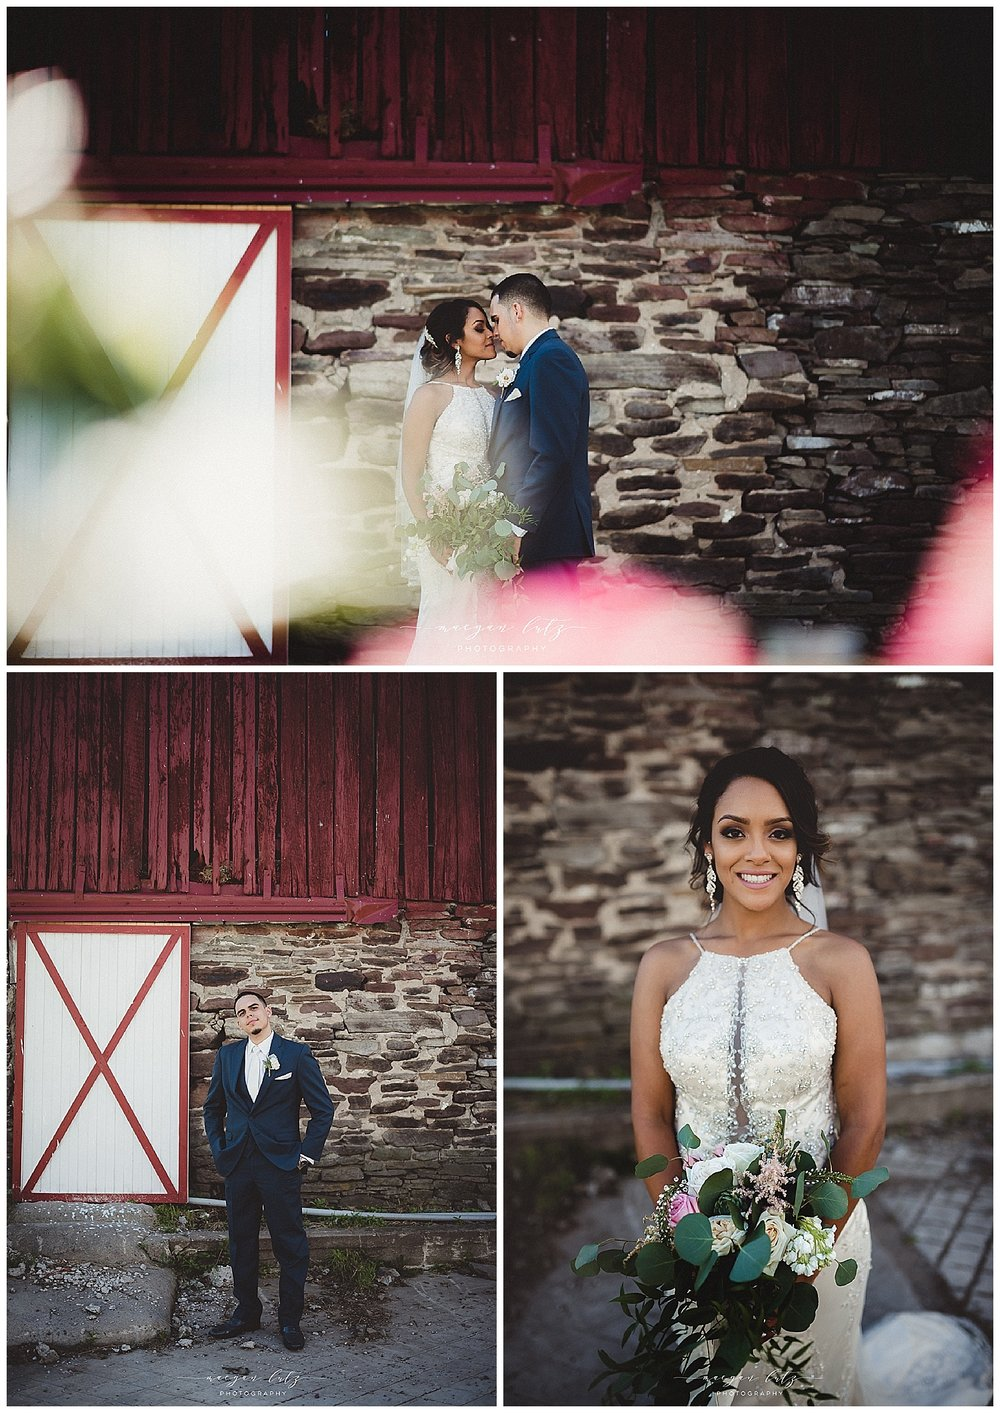 Scranton Photographer at Outdoor rustic Wedding at the Barn at Glistening Pond, Falls PA